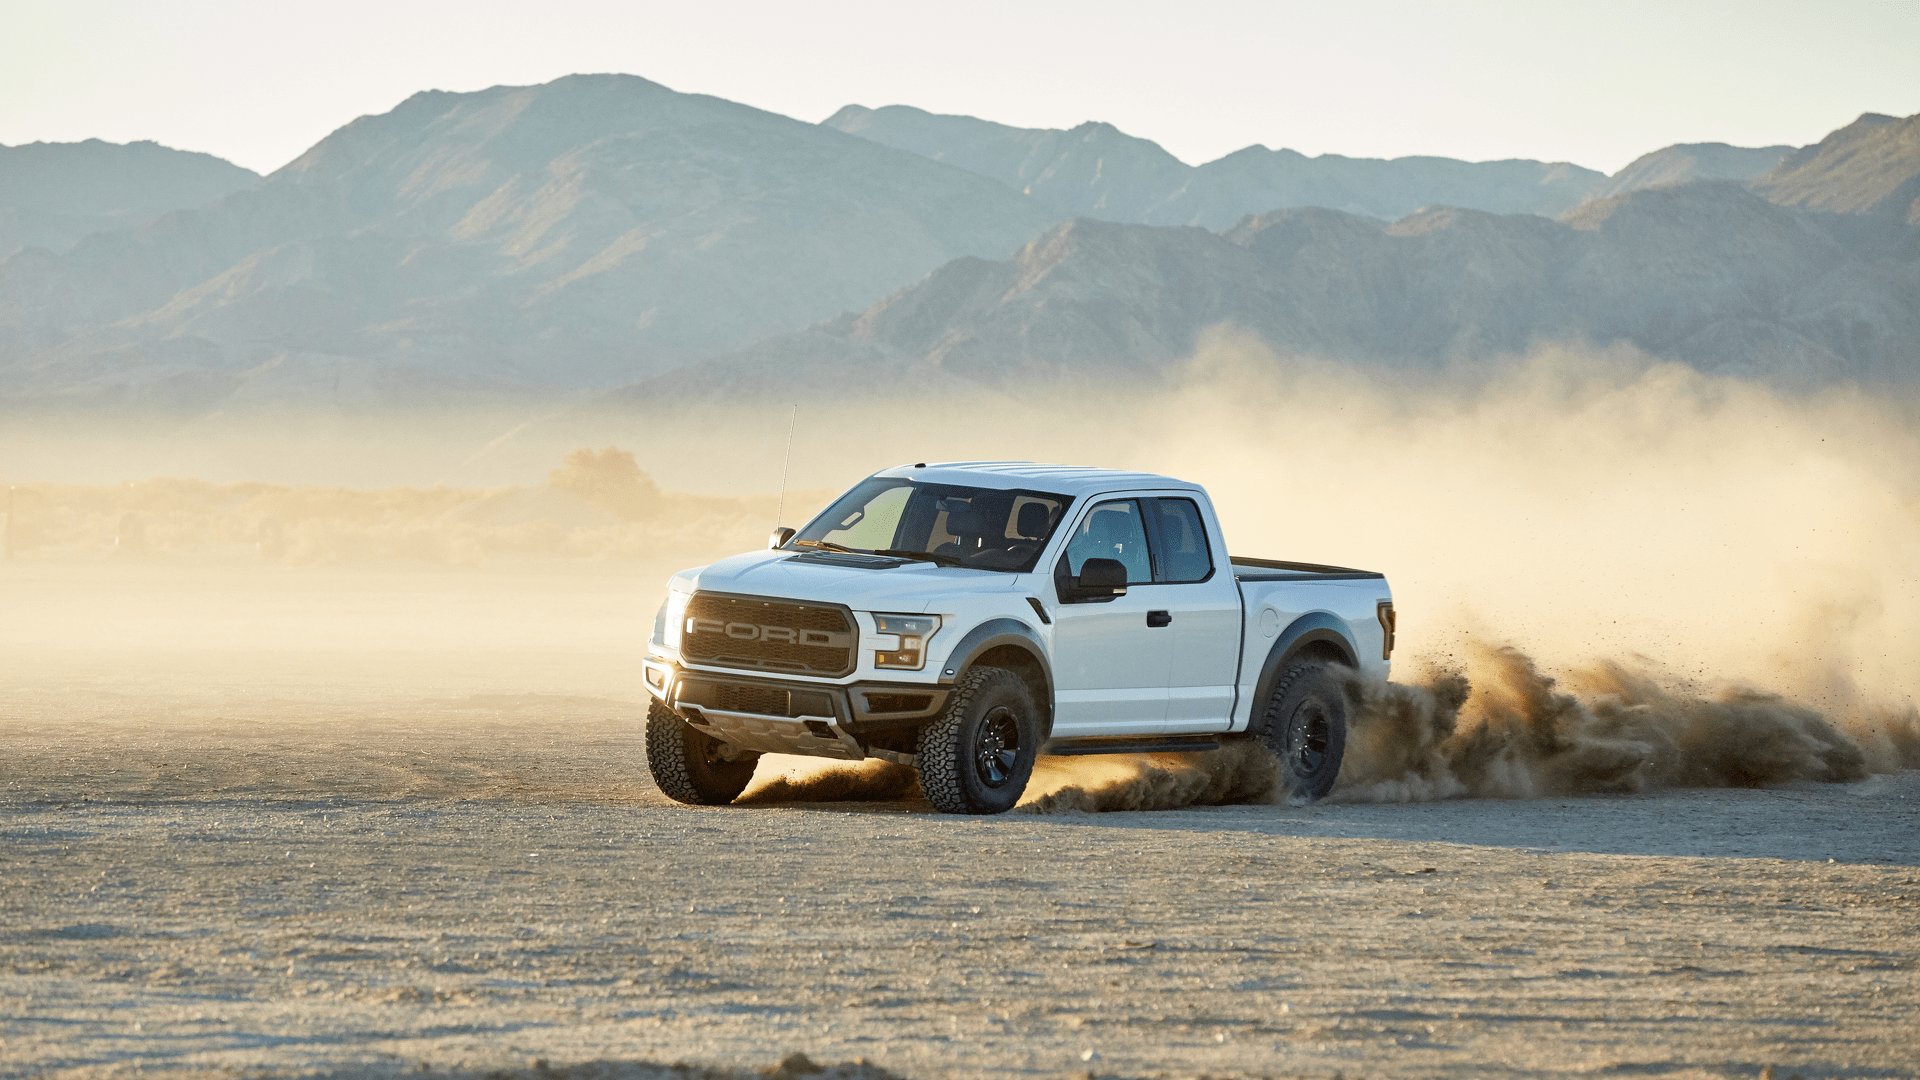 All In One Super Cars Wallpapers 2017 Ford F 150 Raptor Has A Baja Mode